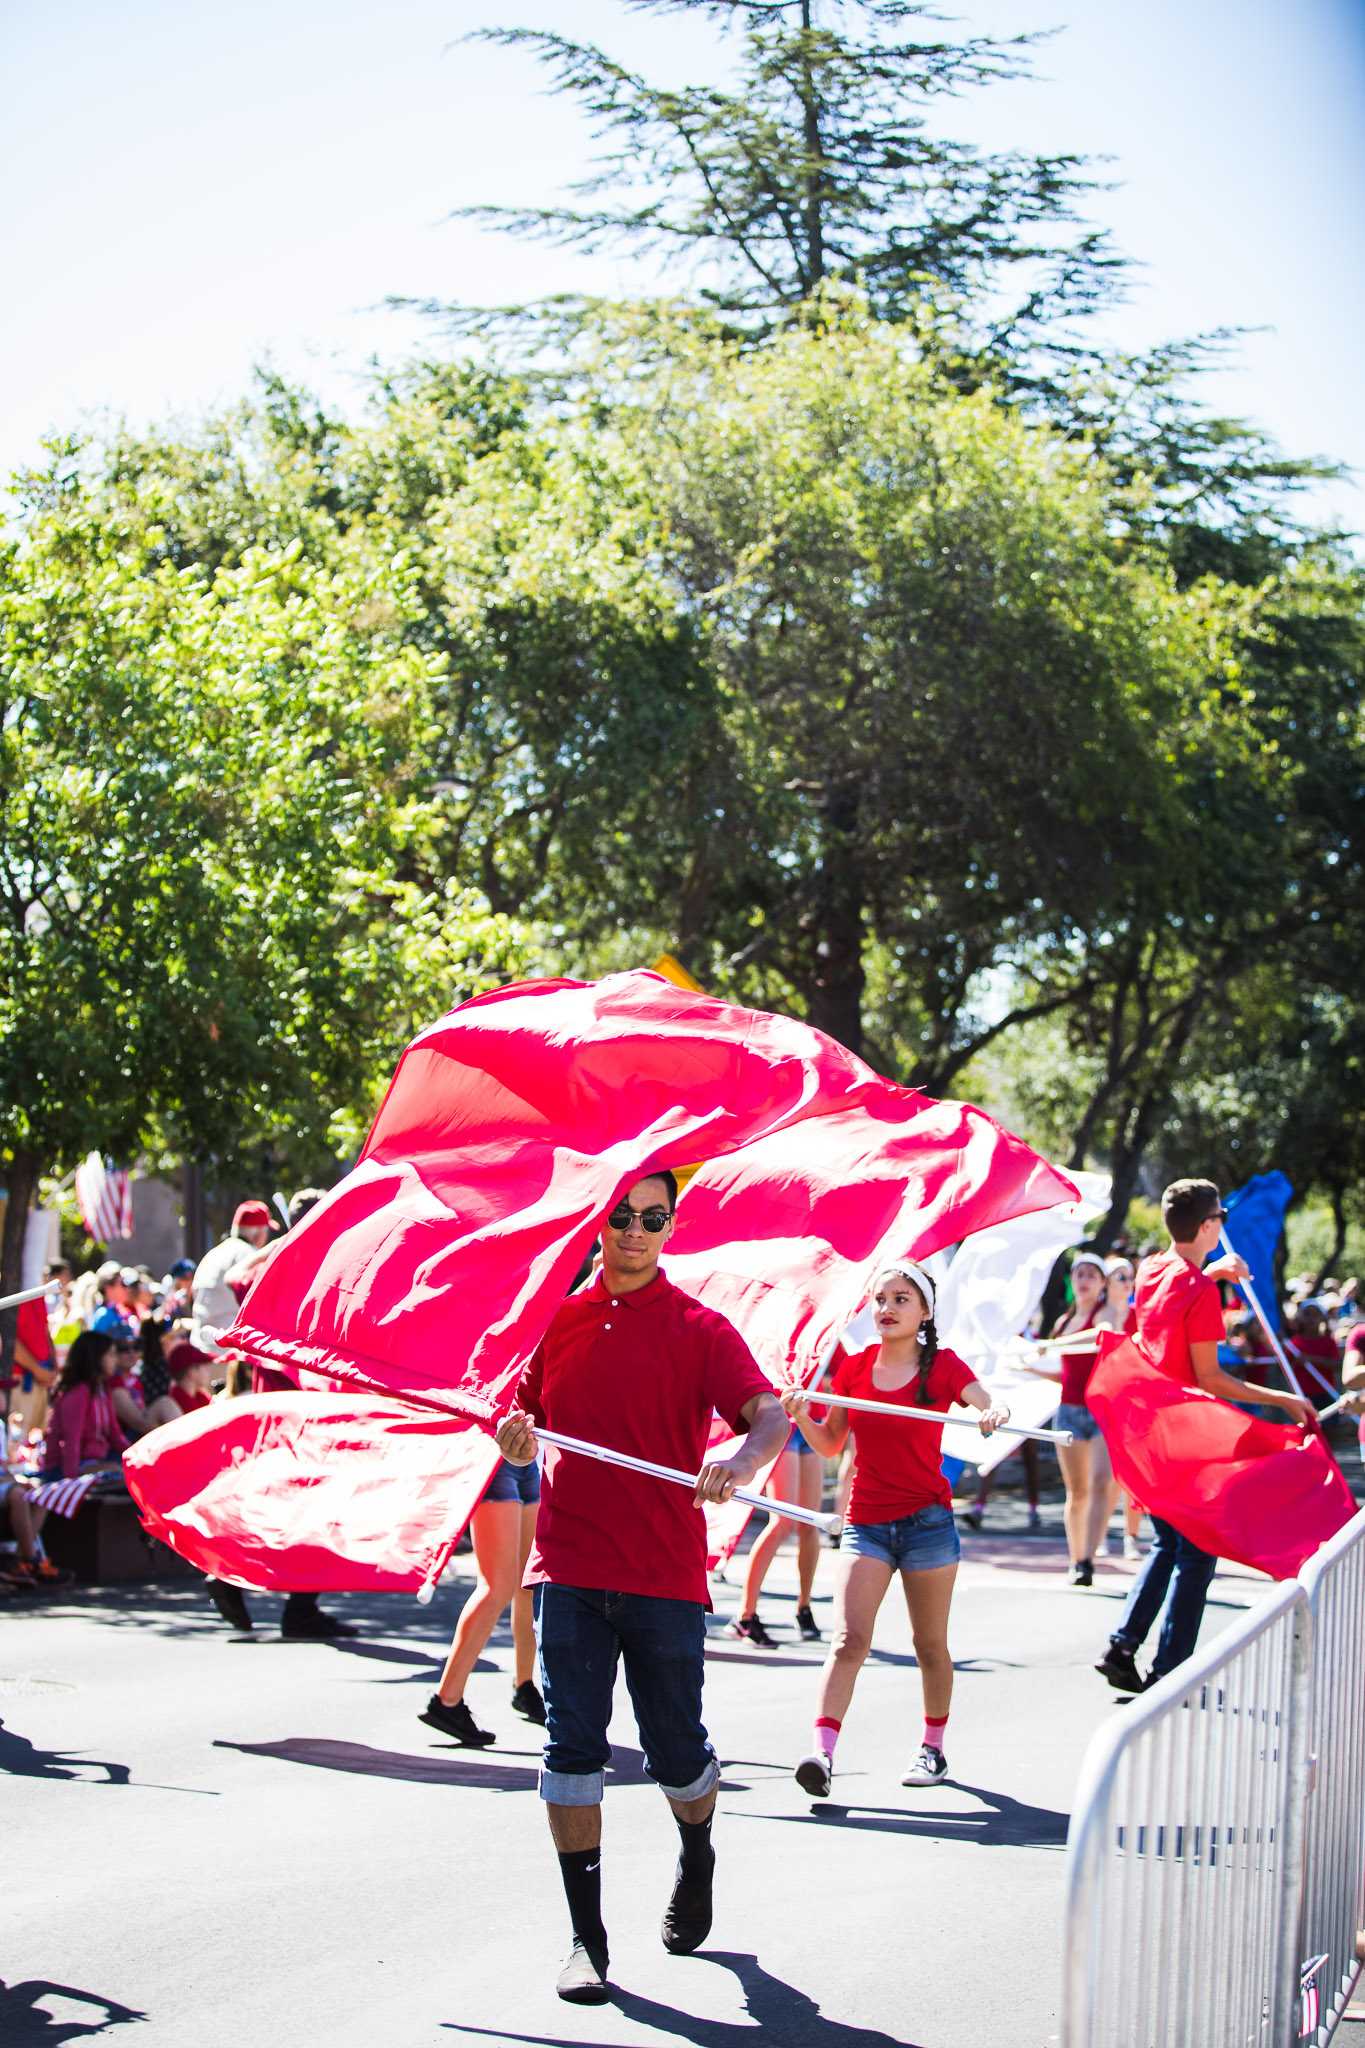 Archer_Inspired_Photography_Morgan_Hill_California_4th_of_july_parade-54.jpg